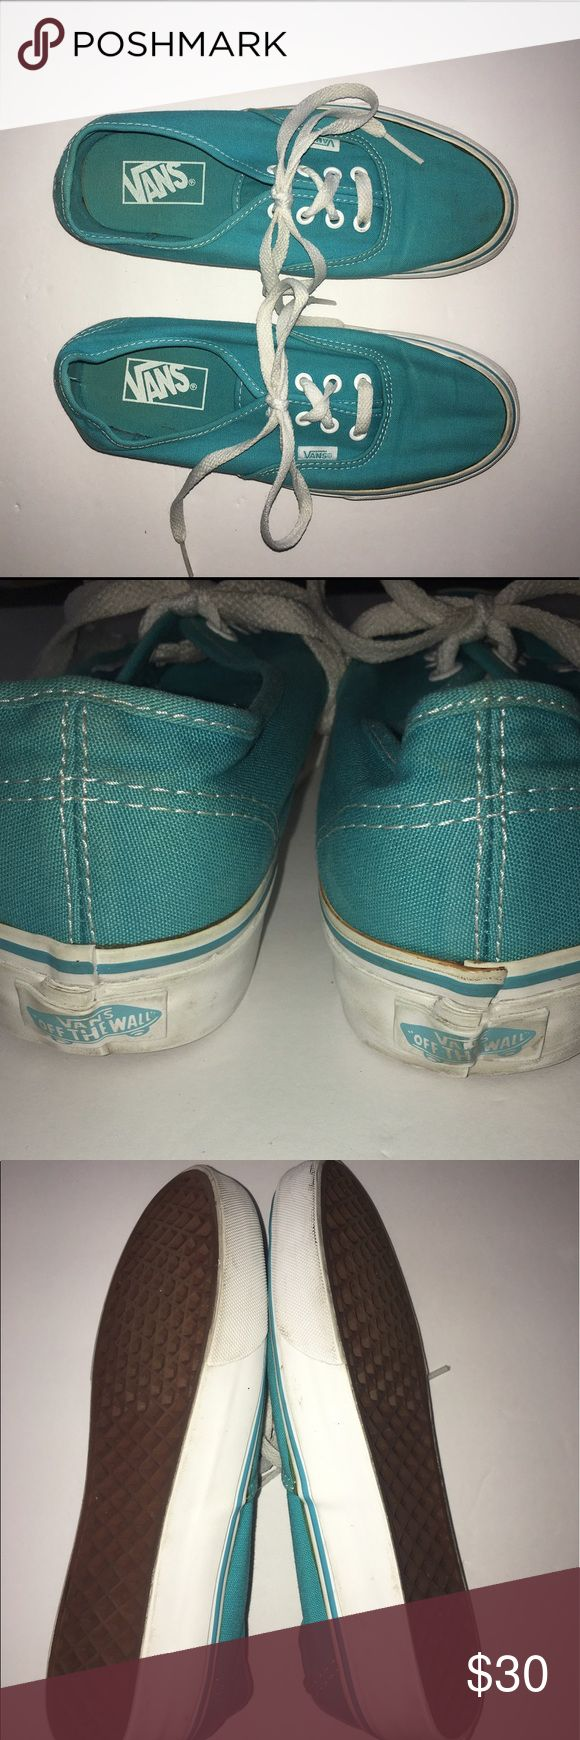 Vans The Authentic Vans The Authentic, Vans original and now iconic style, is a simple low top, lace-up with durable canvas upper, eyelets, Vans flag label and Vans original Waffle Outsole. Gently used.  Color: Teal Vans Shoes Sneakers